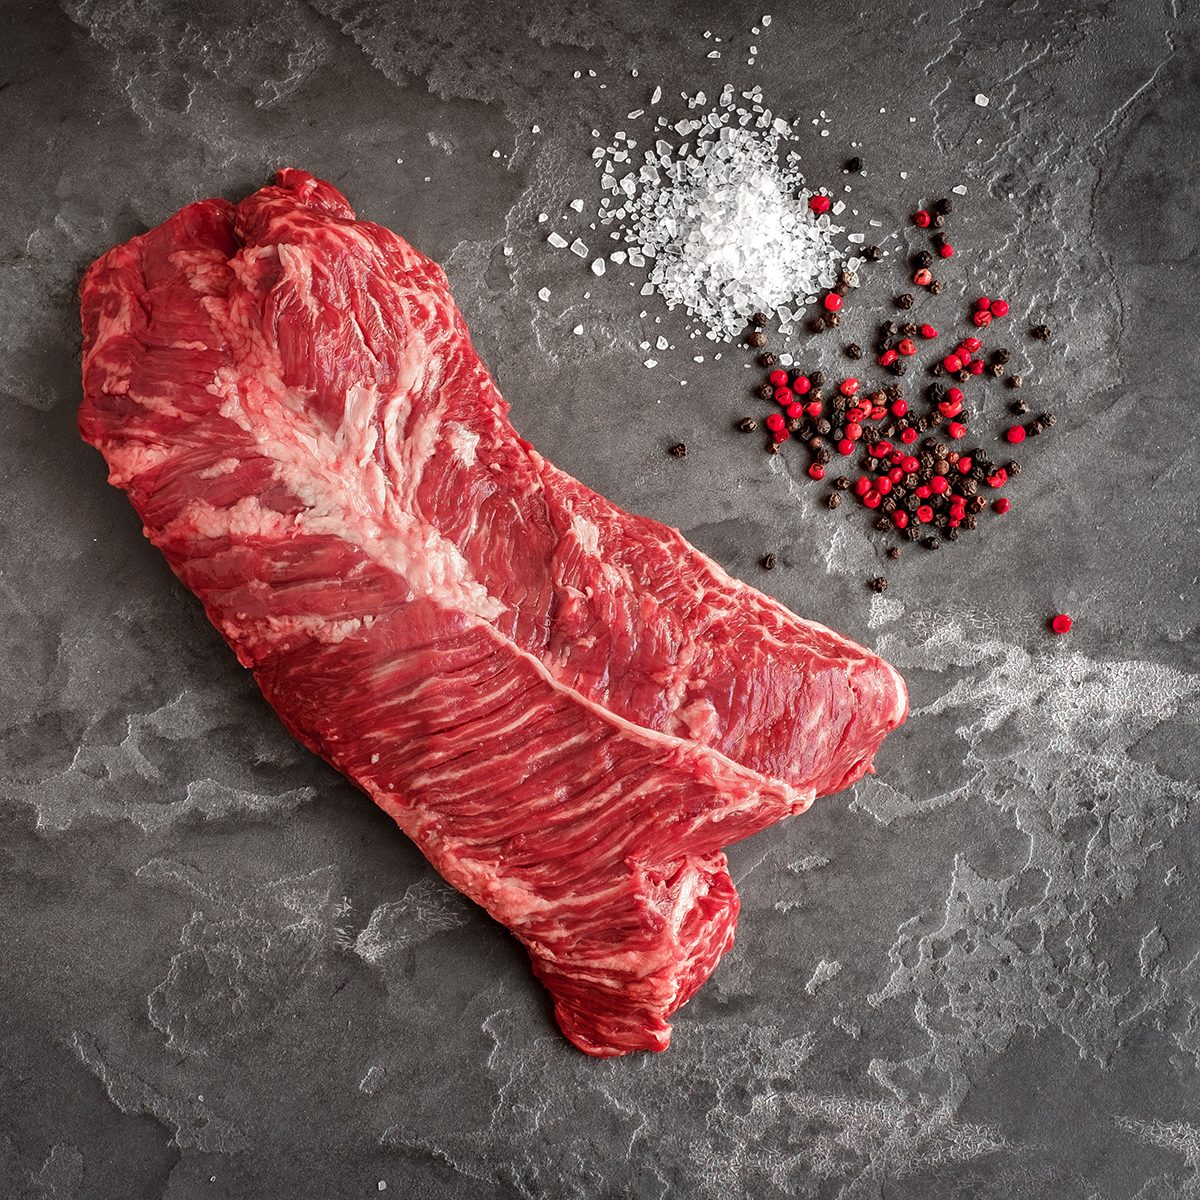 Hanging Tender steak on a stone background with salt and pepper